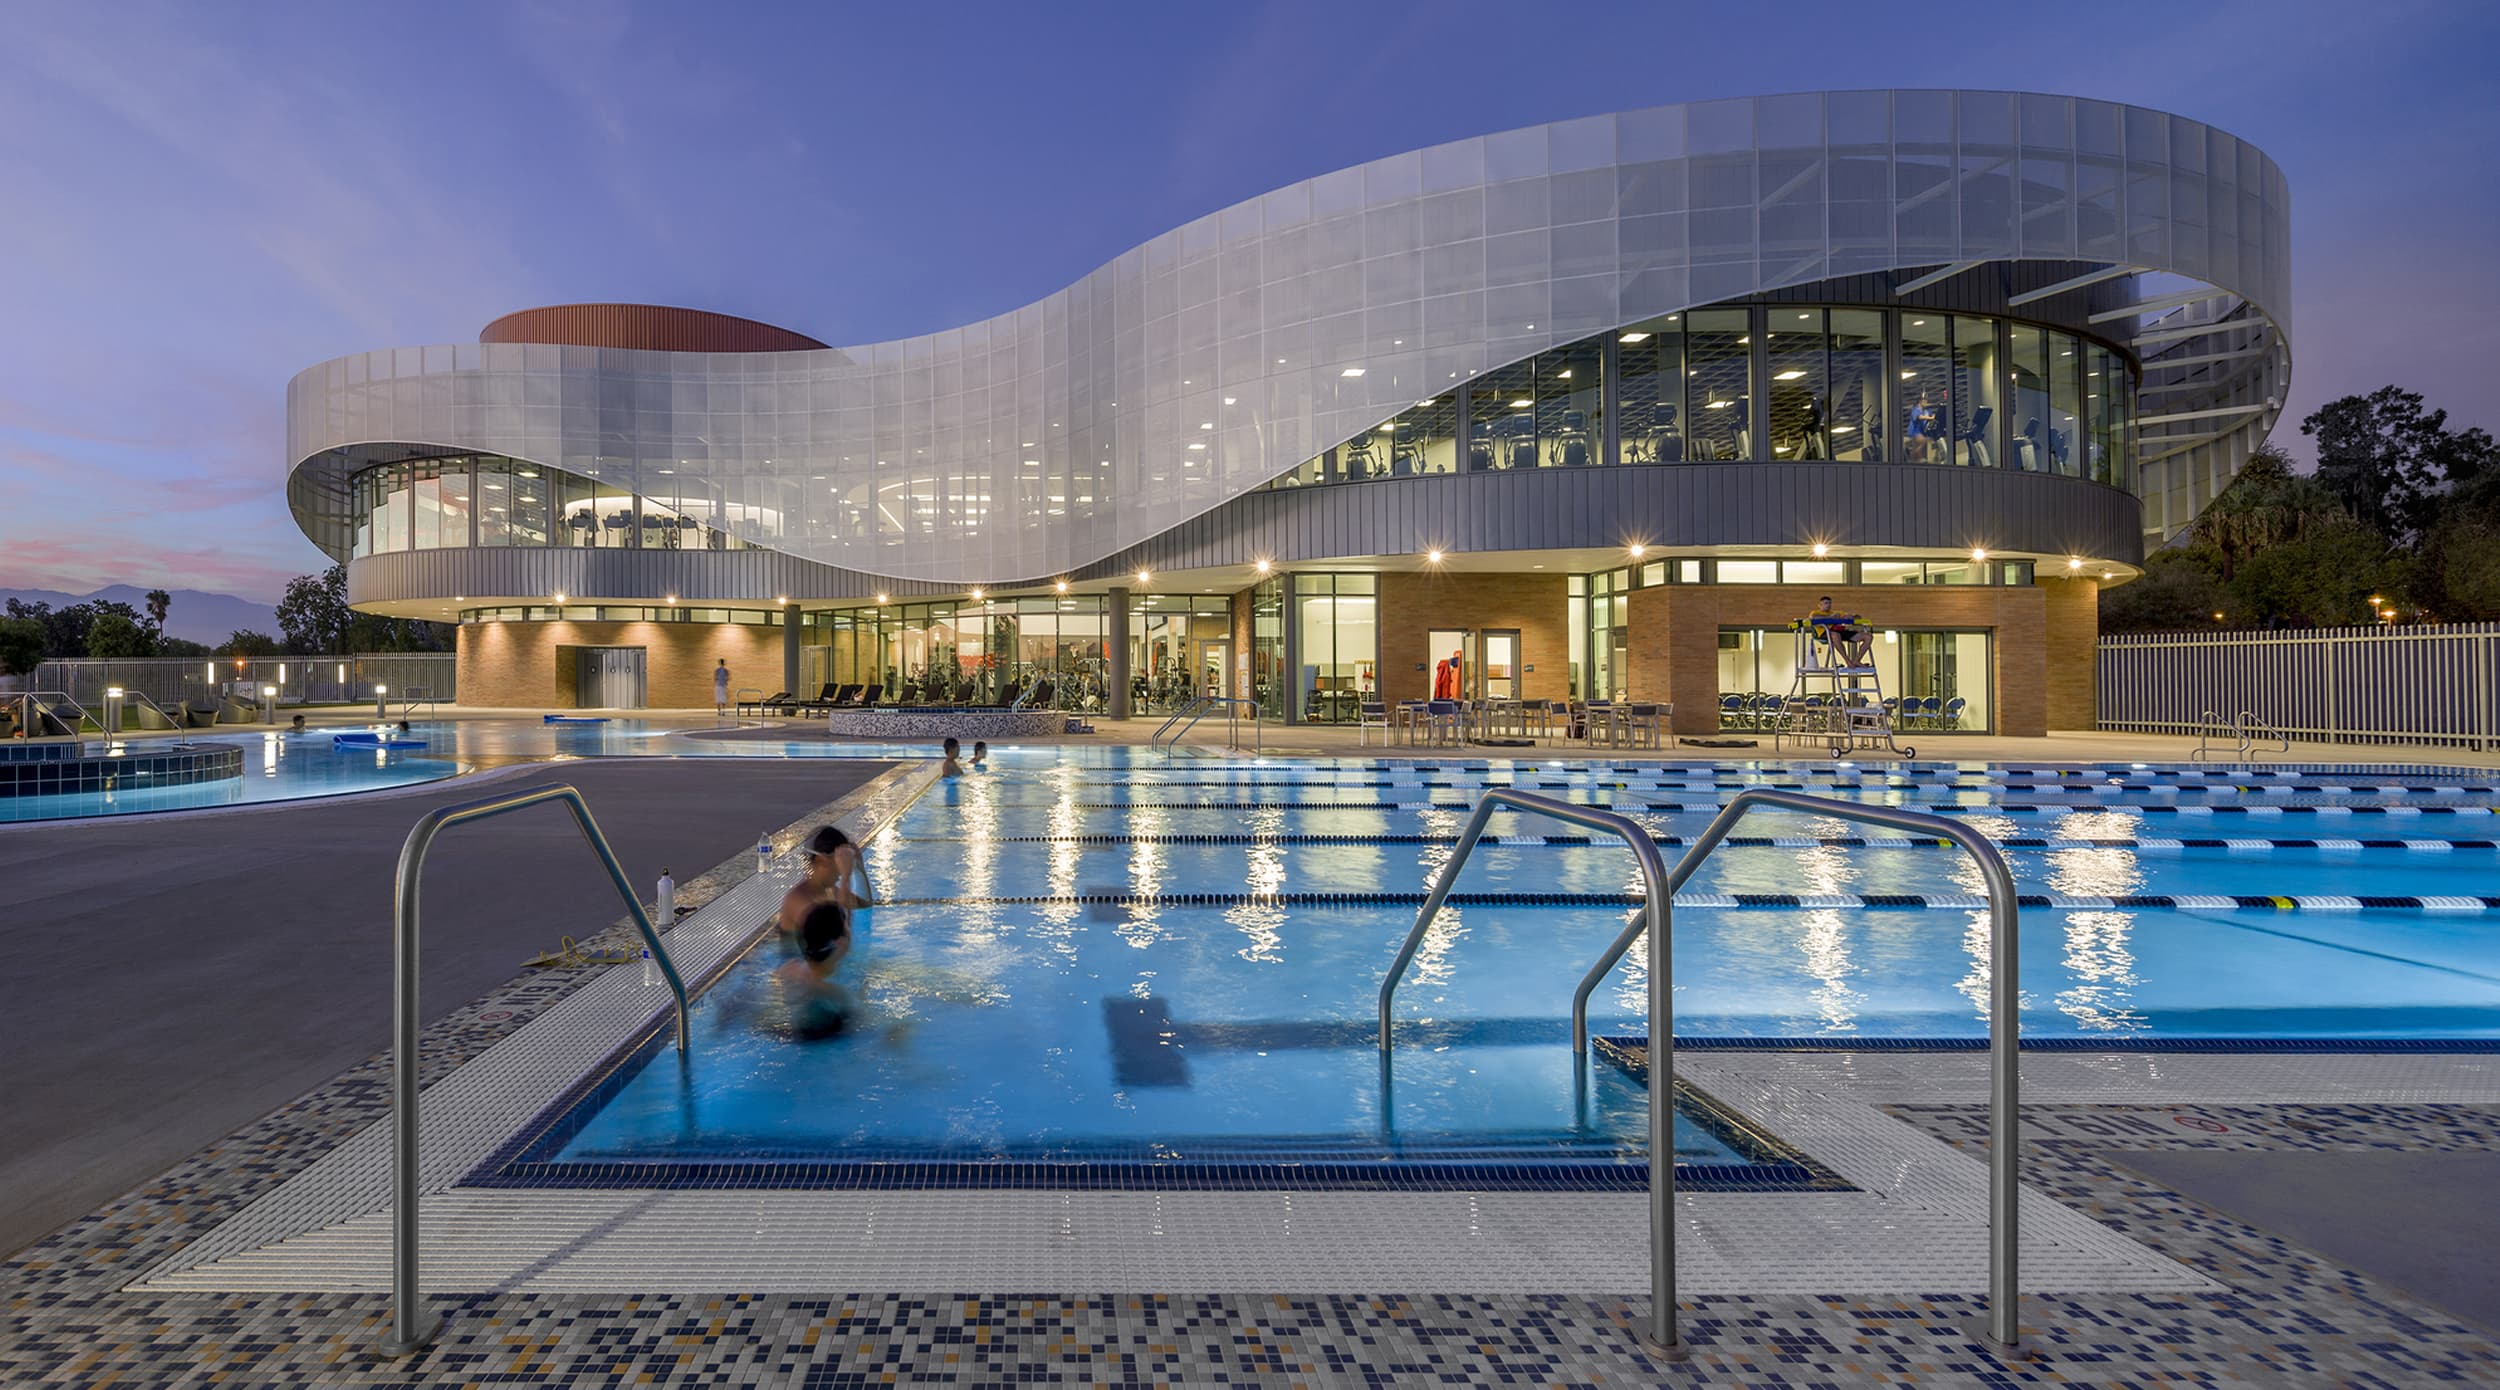 People swimming in an outdoor pool at night at a college recreation center